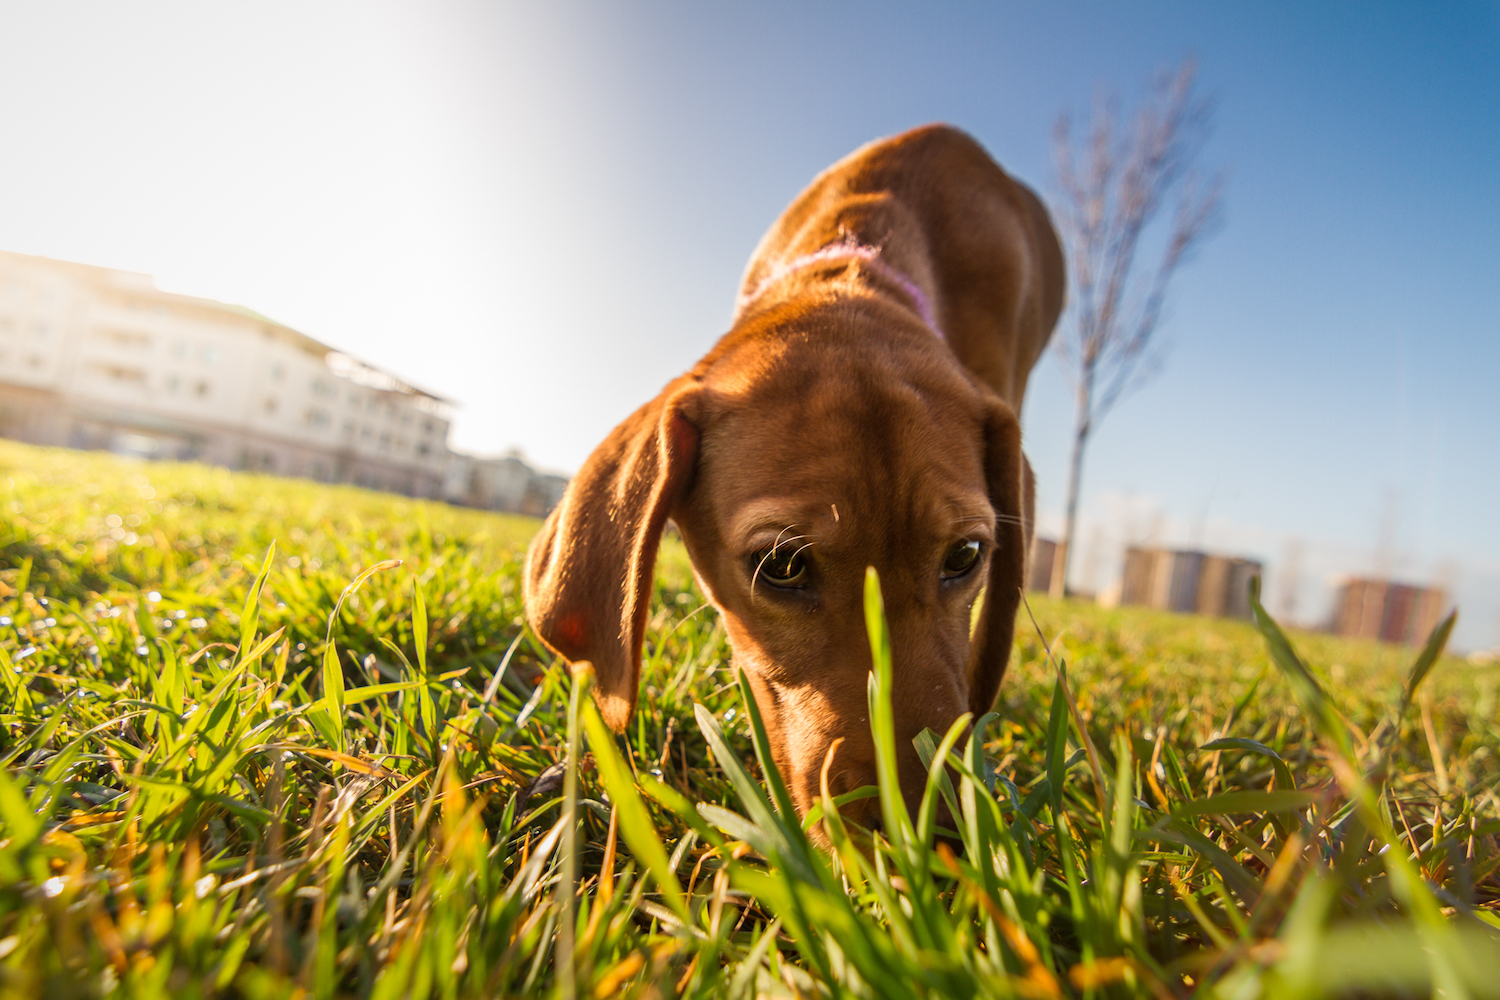 Scientists at the Max Planck Institute for the Science of Human History have now found evidence that dogs create a mental image to represent a scent that they are tracking.